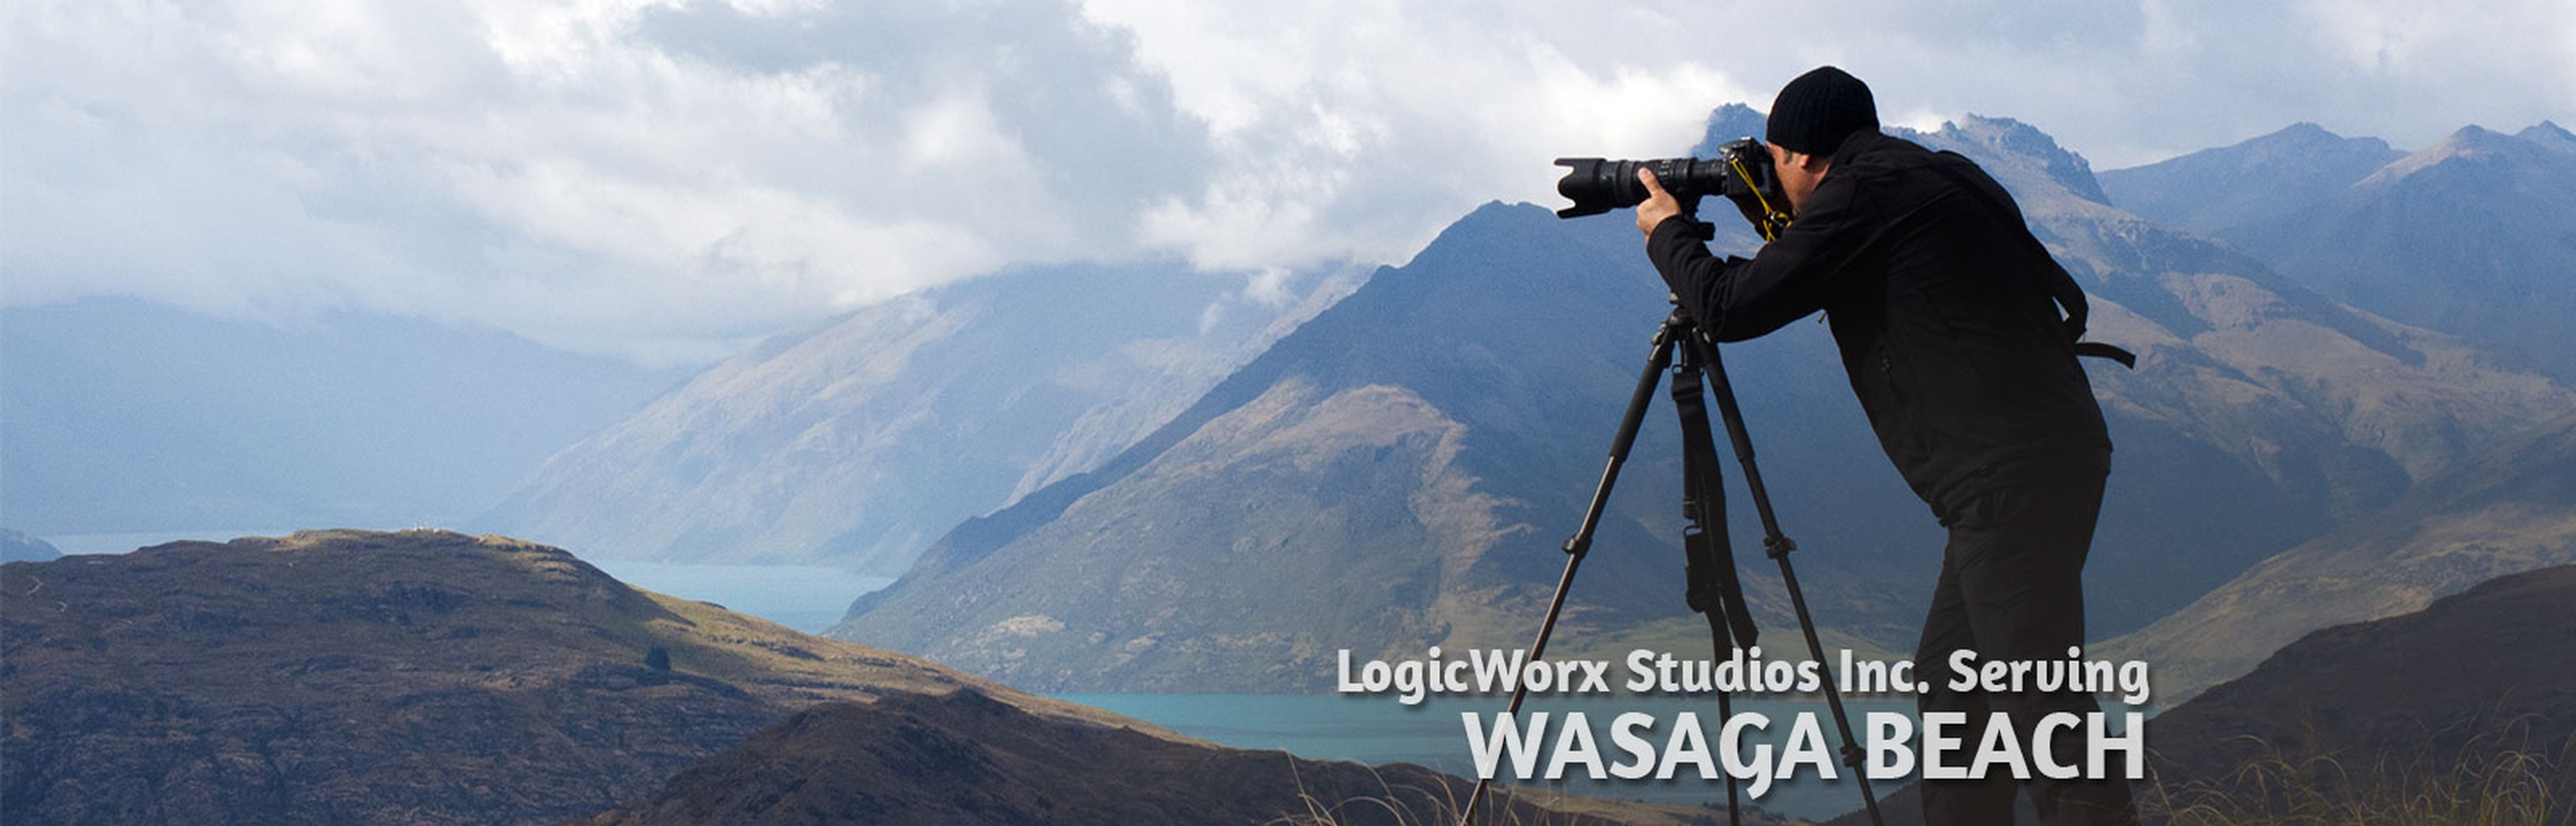 LogicWorx Studios Inc. serving Wasaga Beach